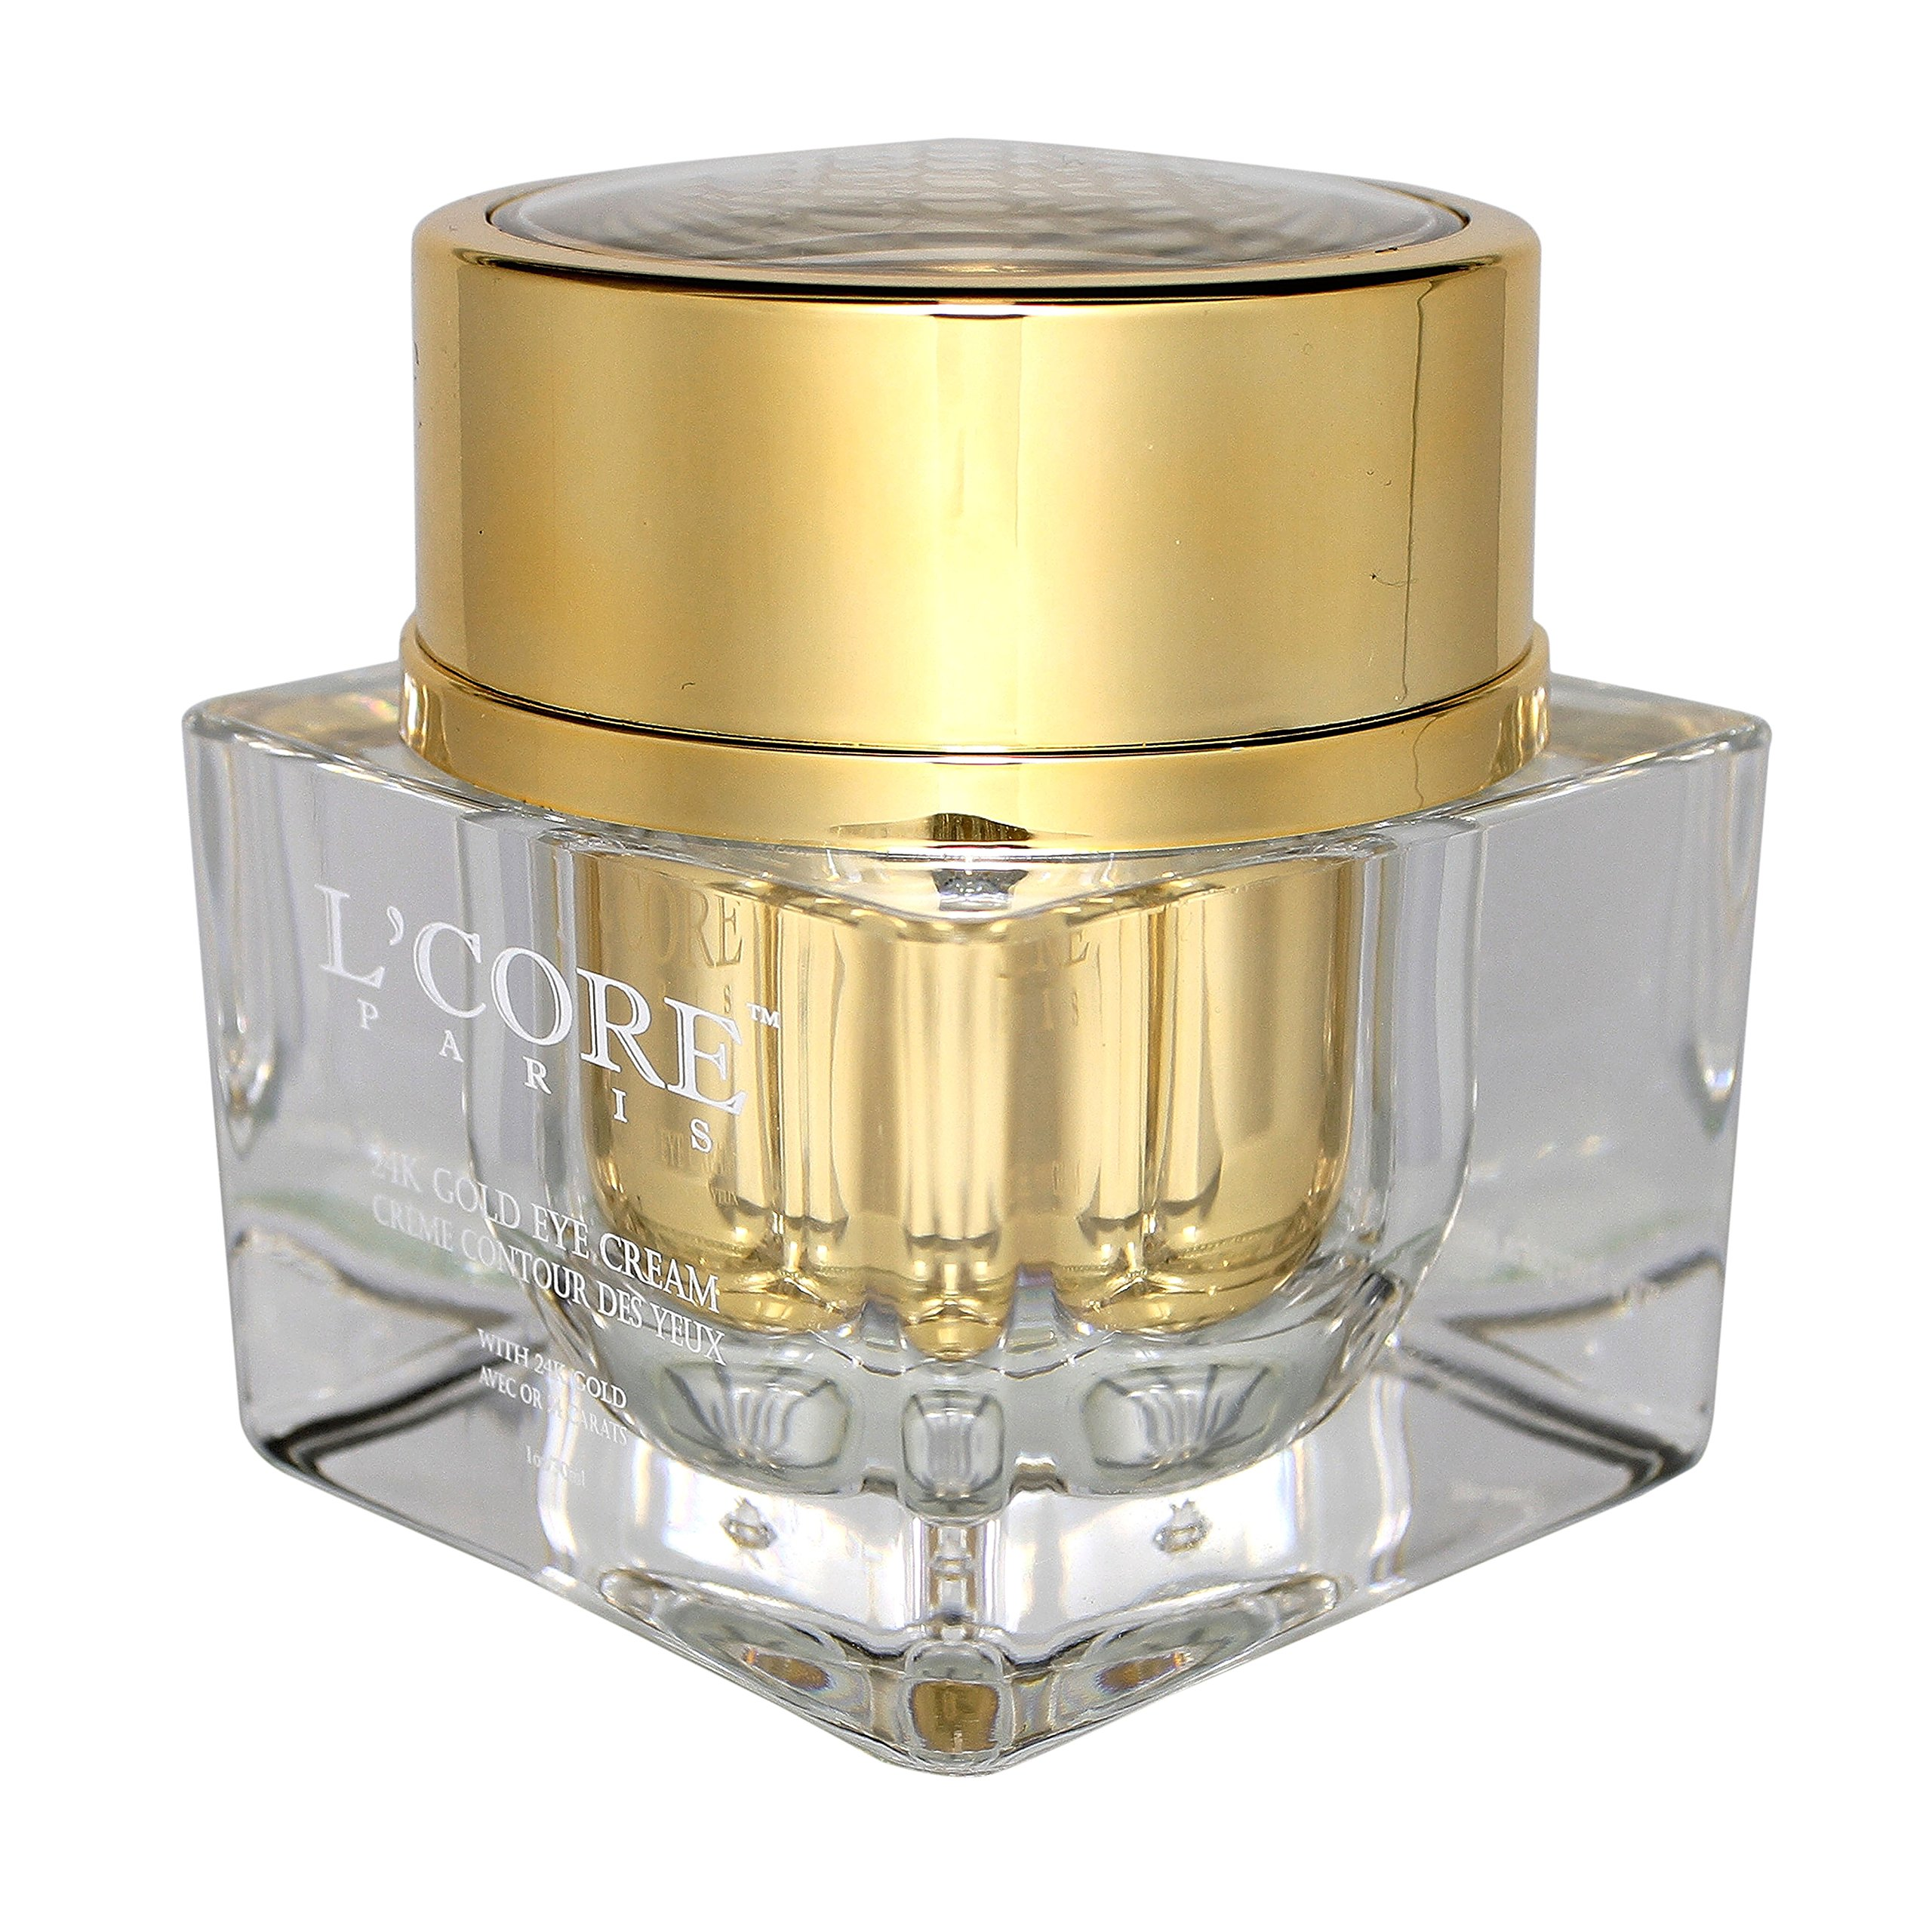 L'core paris 24K Eye Cream with natural organic extracts - Size